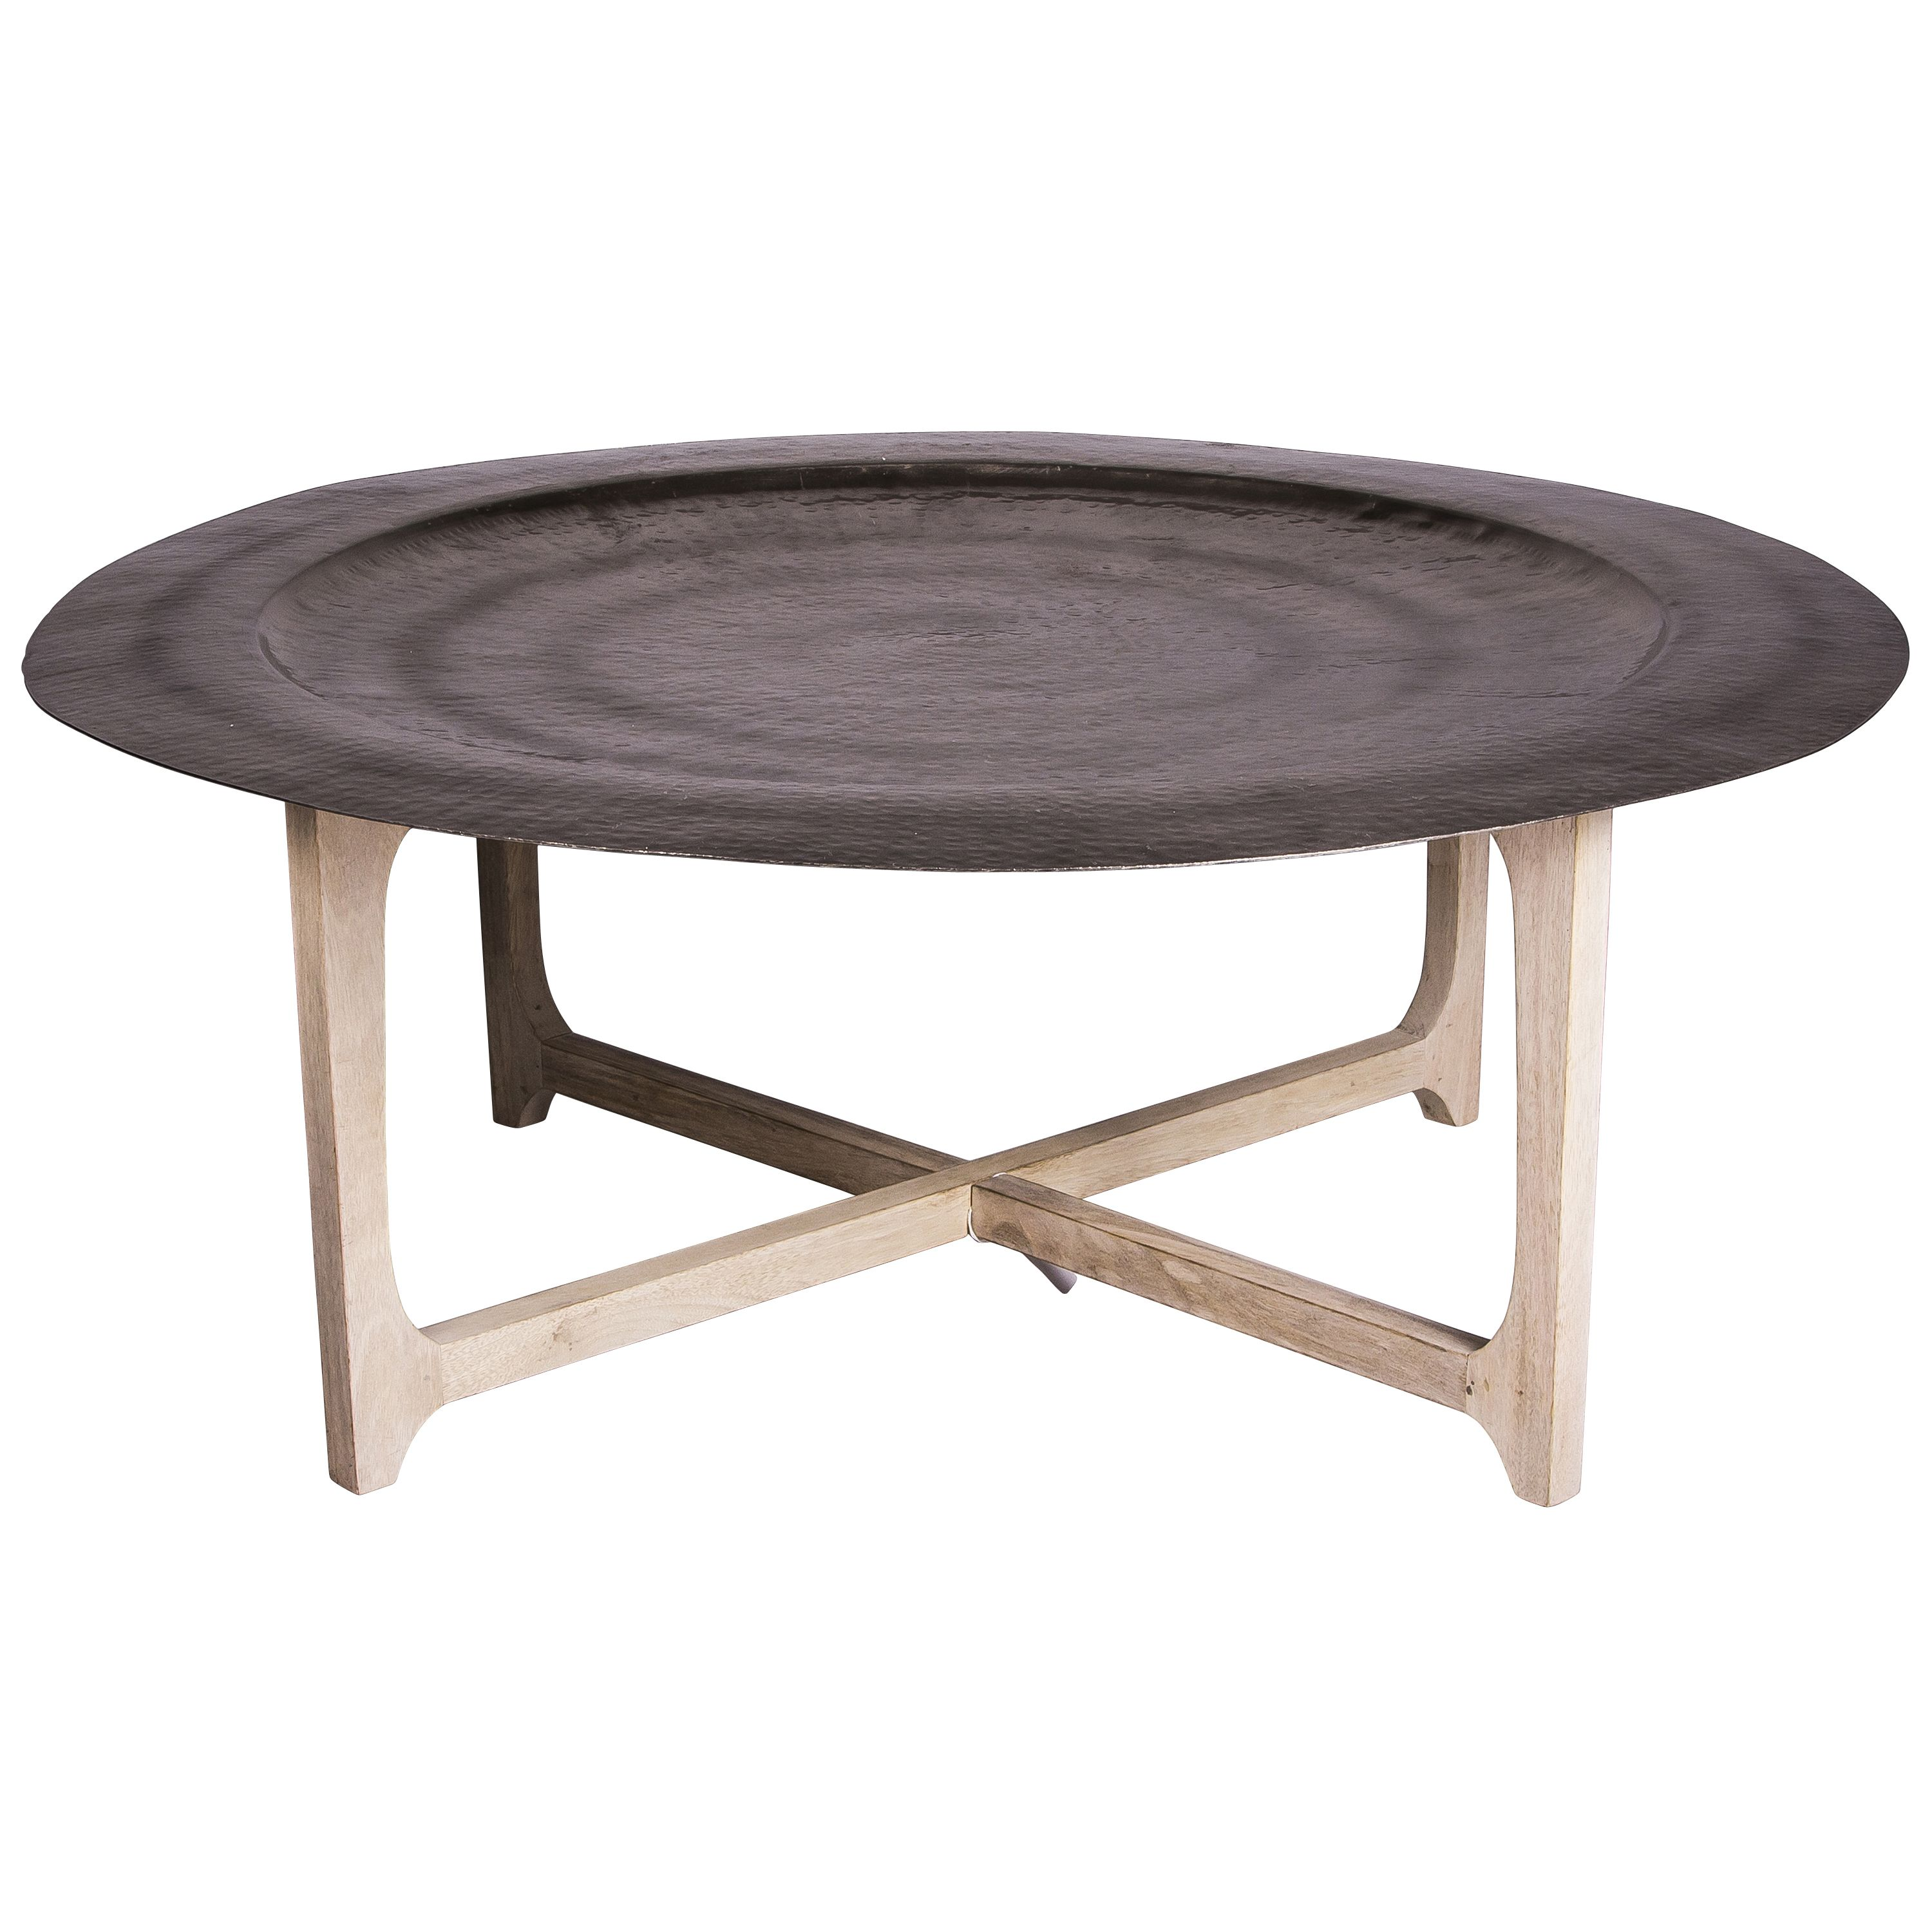 Tray Coffee Table With Light Mango Wood Legs And Hammered Metal Tray House Envy Co Uk Round Coffee Table Coffee Table Coffee Table Tray